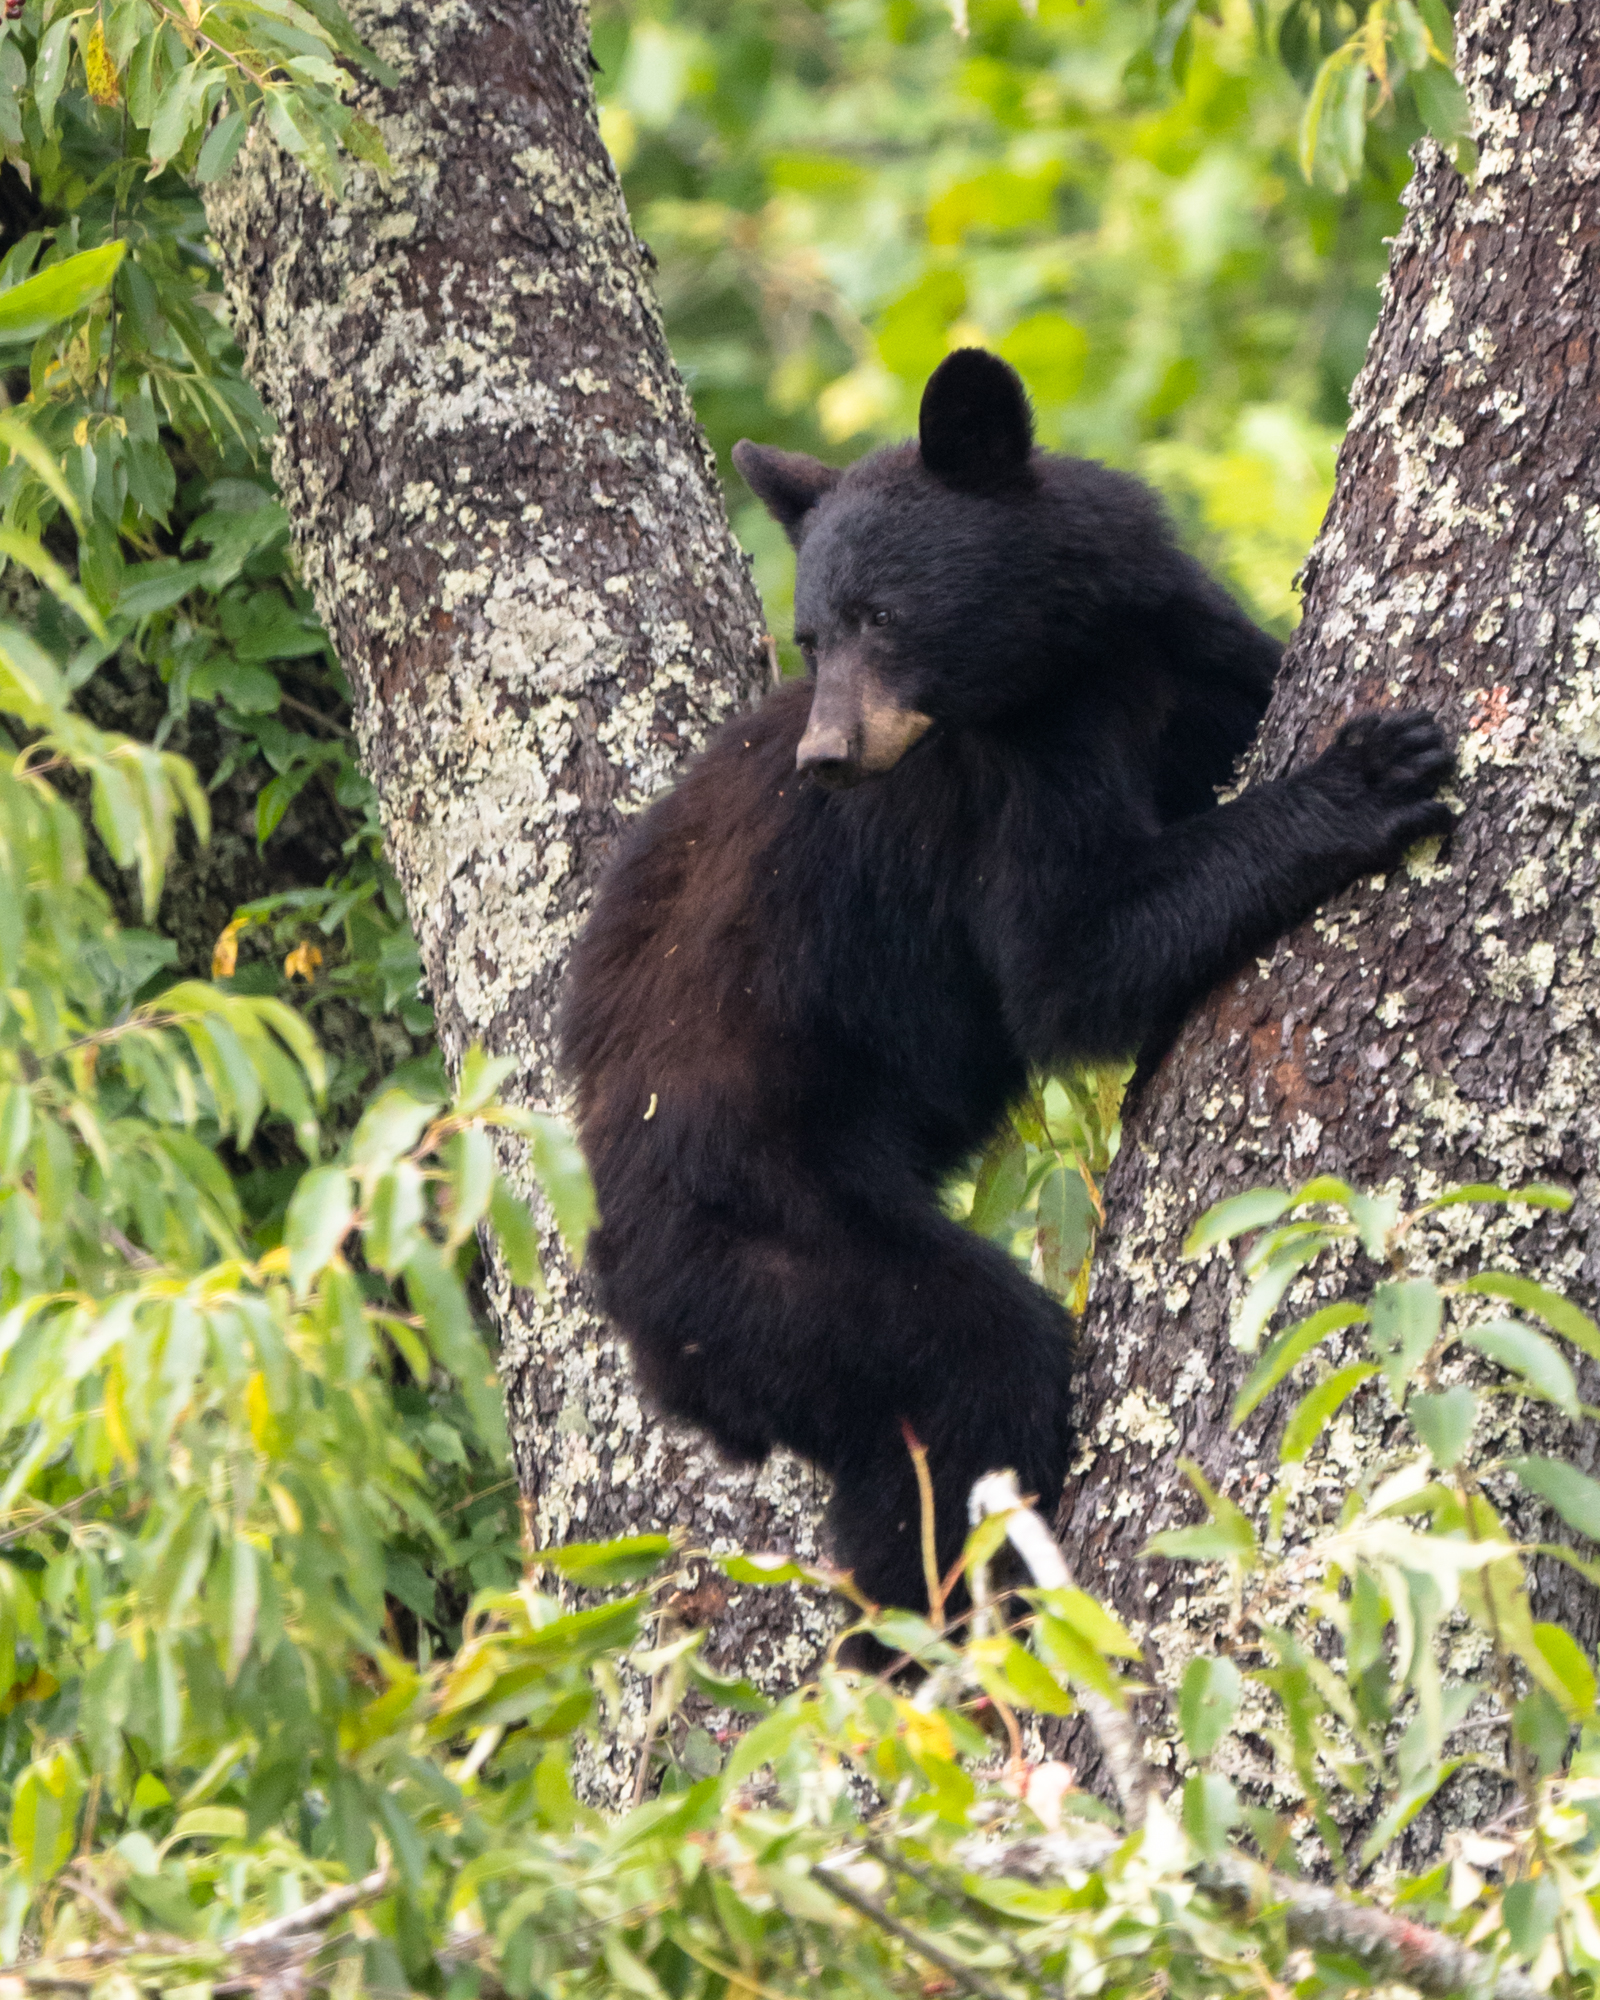 Black bear in the cherry trees. Cades Cove, Smoky Mountains National Park. 560mm at f/8, 1/320s, and ISO 3200.